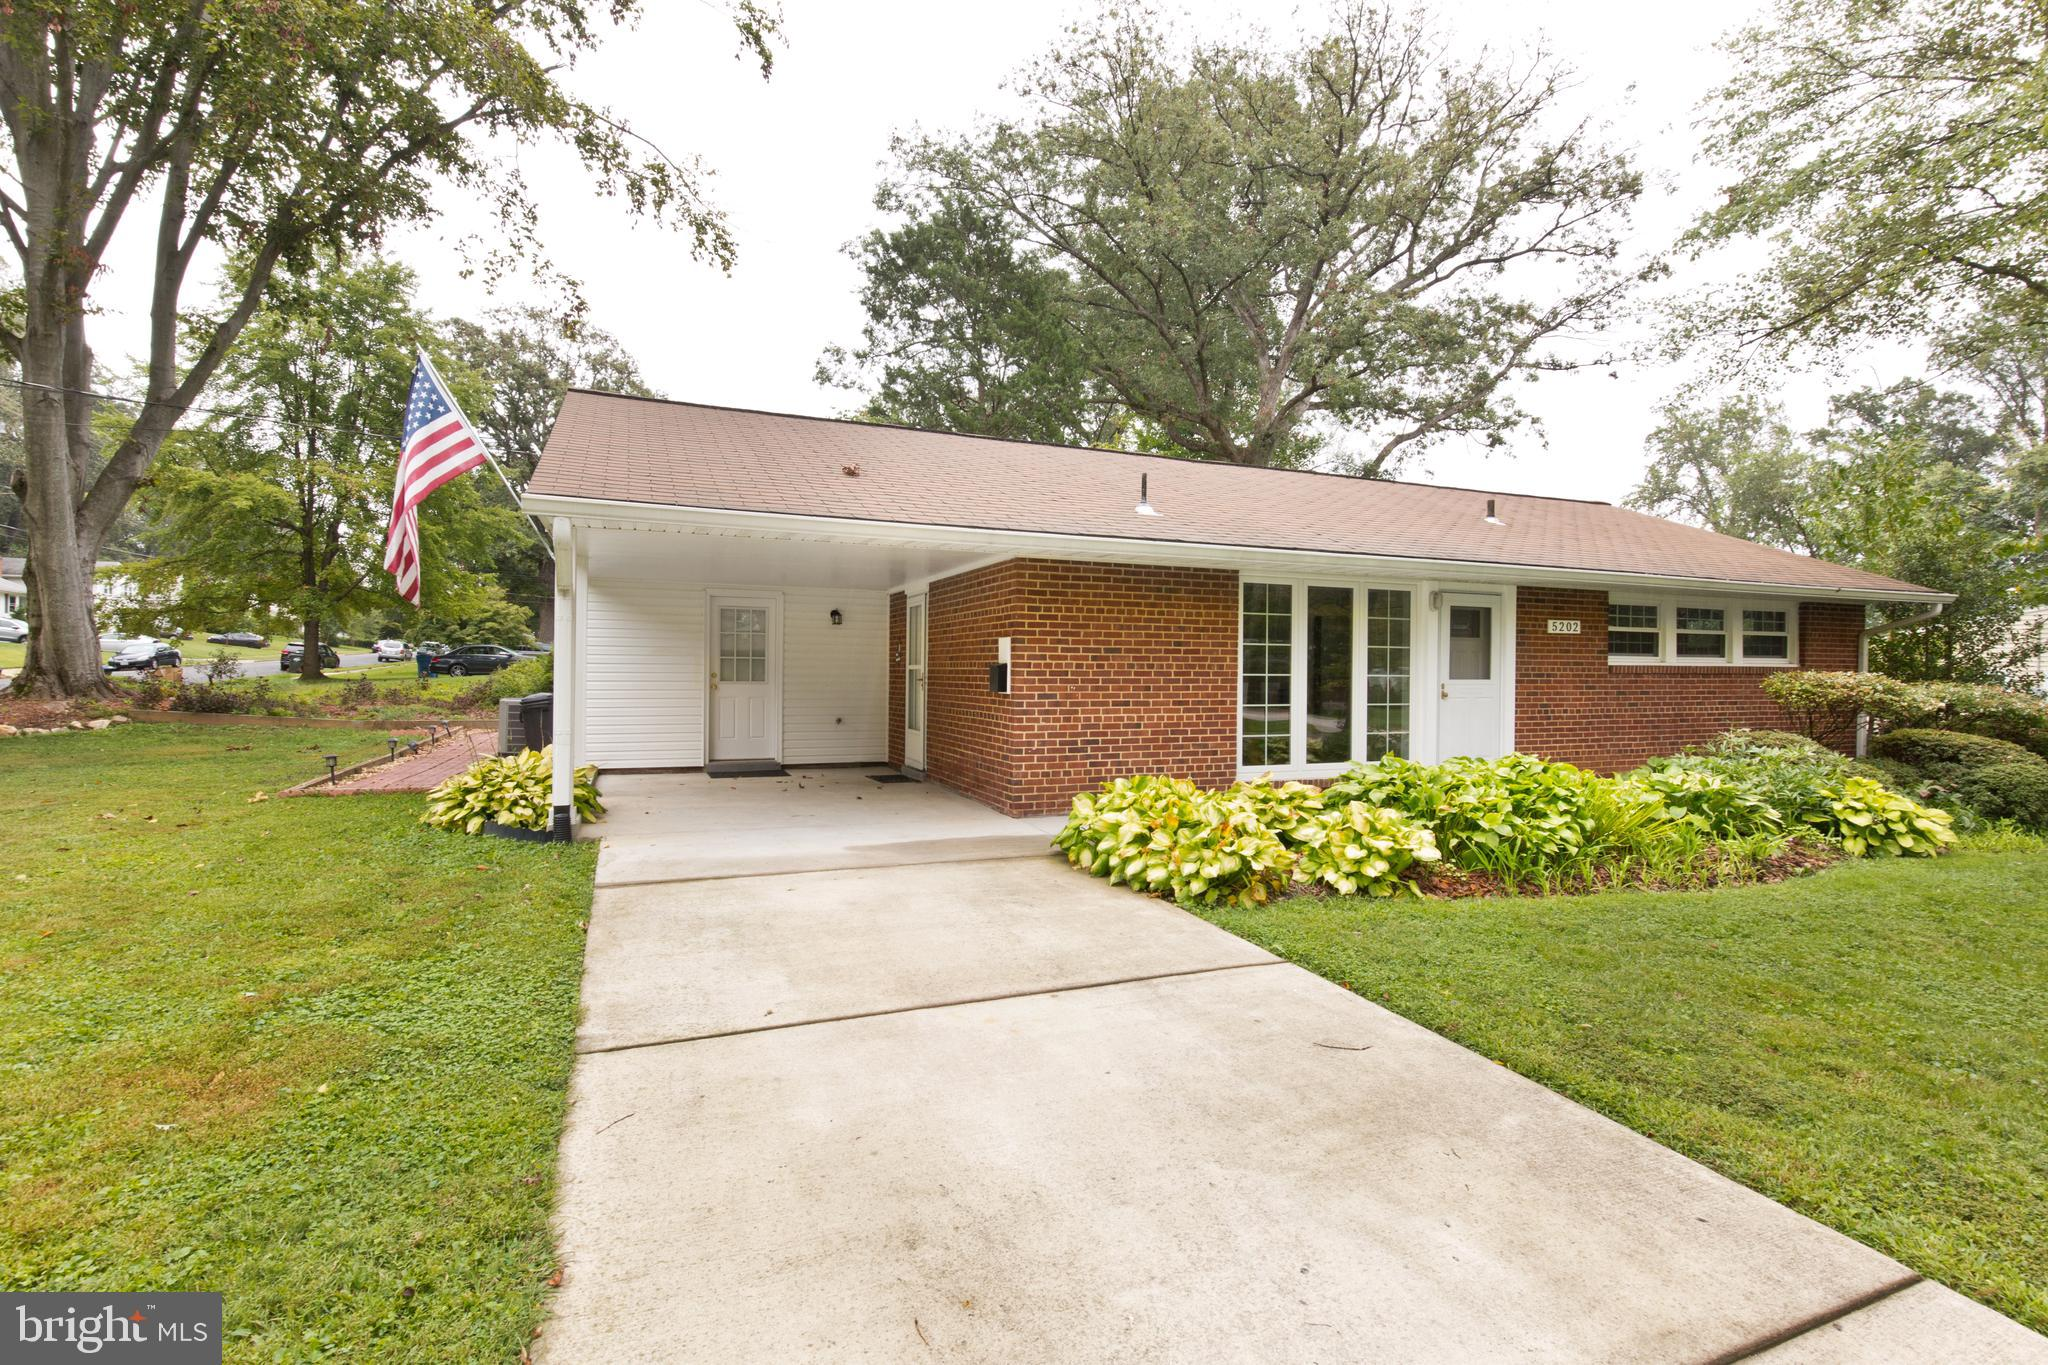 Check out this fabulous move-in ready 3 bedroom 1 bathroom North Springfield ranch house with great